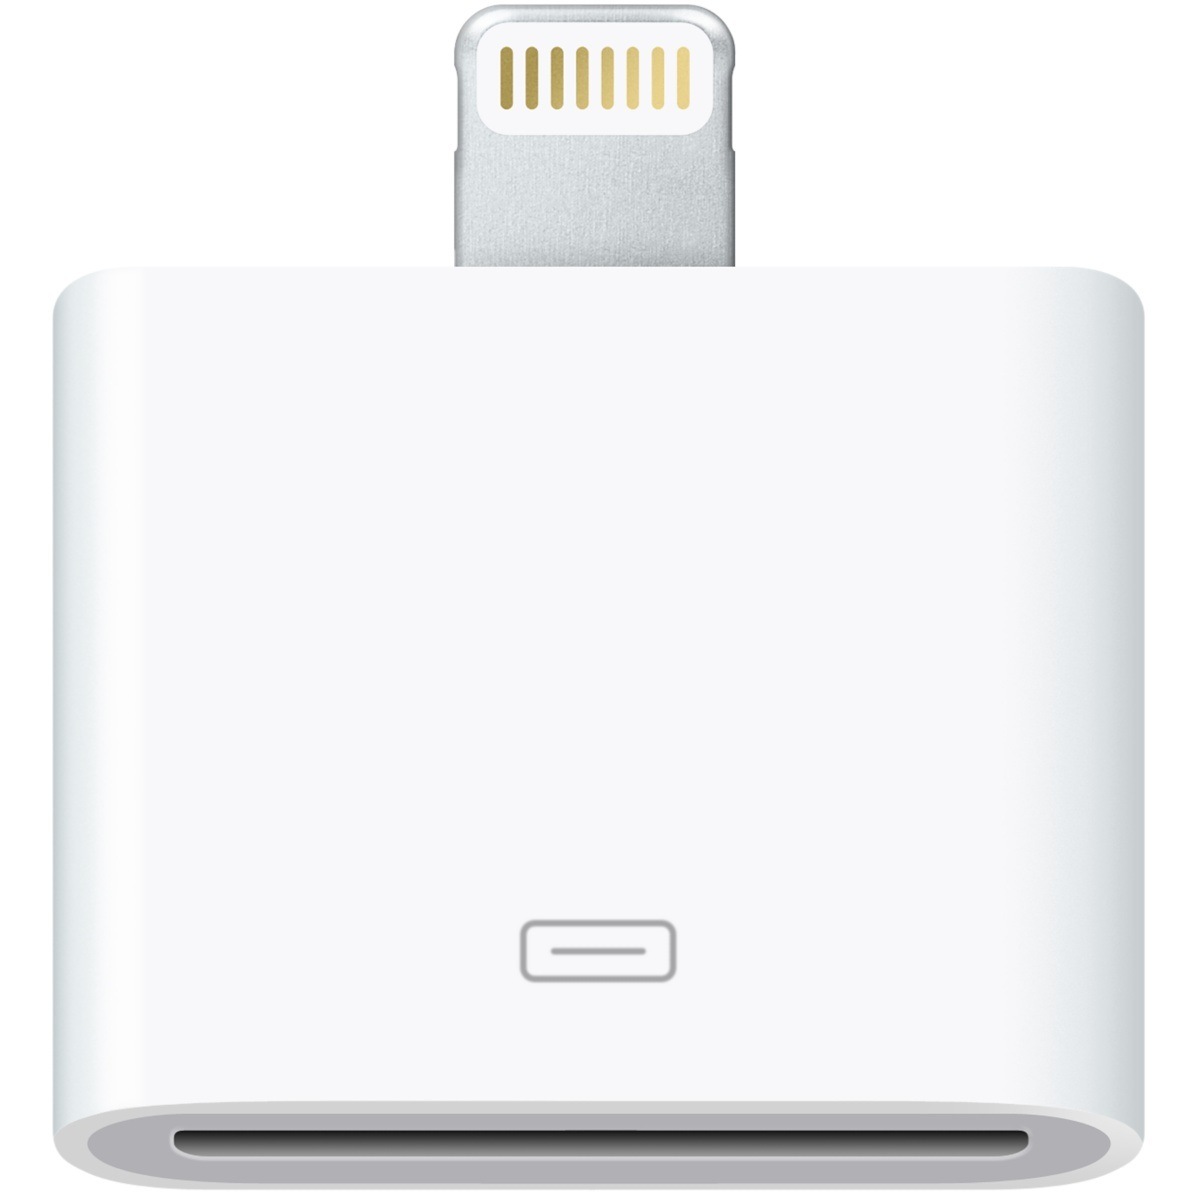 Apple s Lightning Connector: What You Need to Know News